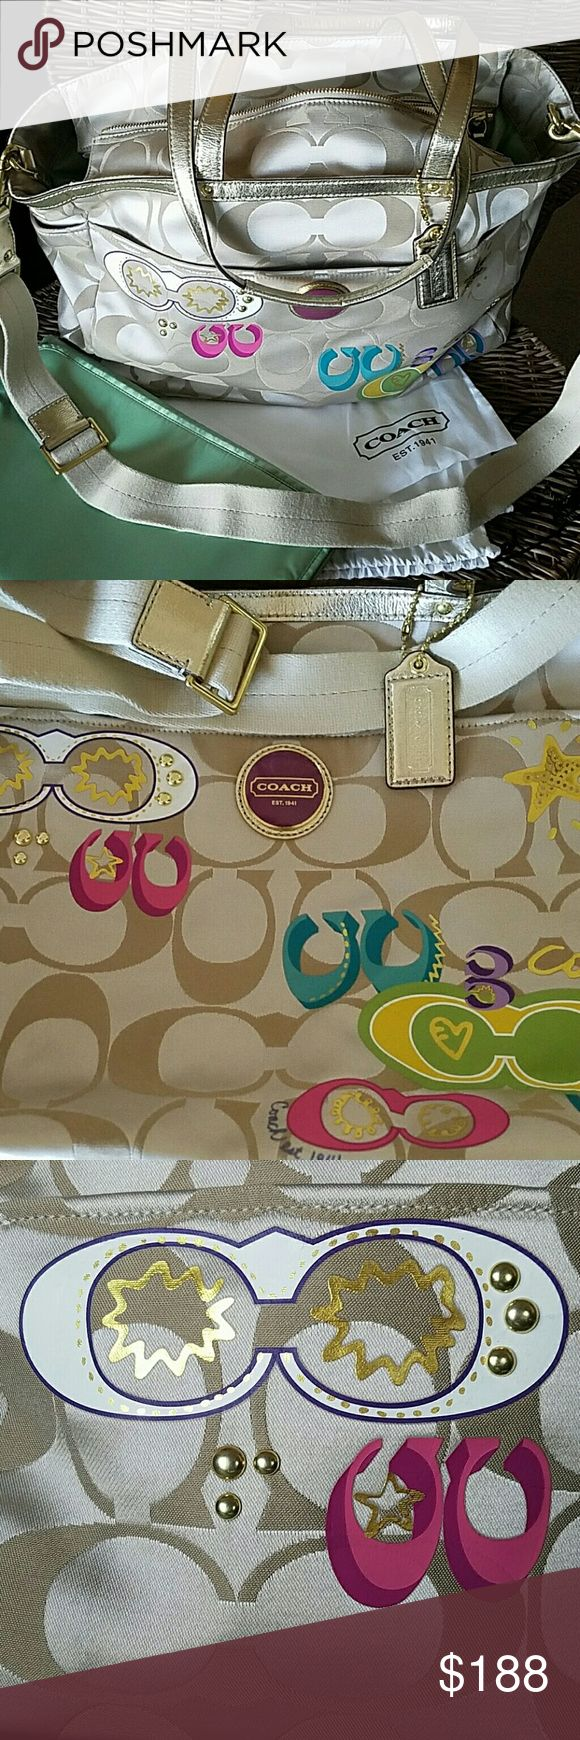 """Authentic Coach Multifunction/Baby Bag, Multicolor BEAUTIFUL! Gently used/Clean.  Multifunction bag... Great as a diaper bag but big enough for a carry-all :) Lots of pockets inside and out!  Carry handles measure 23"""" each Strap measures 40"""" at its full extension  Embellishments intact. Gold hardware; unscratched.  Comes with changing pad, dust bag, and care card.    ((Price Firm))   The perfect Spring/Summer colors  :D Coach Bags Baby Bags"""